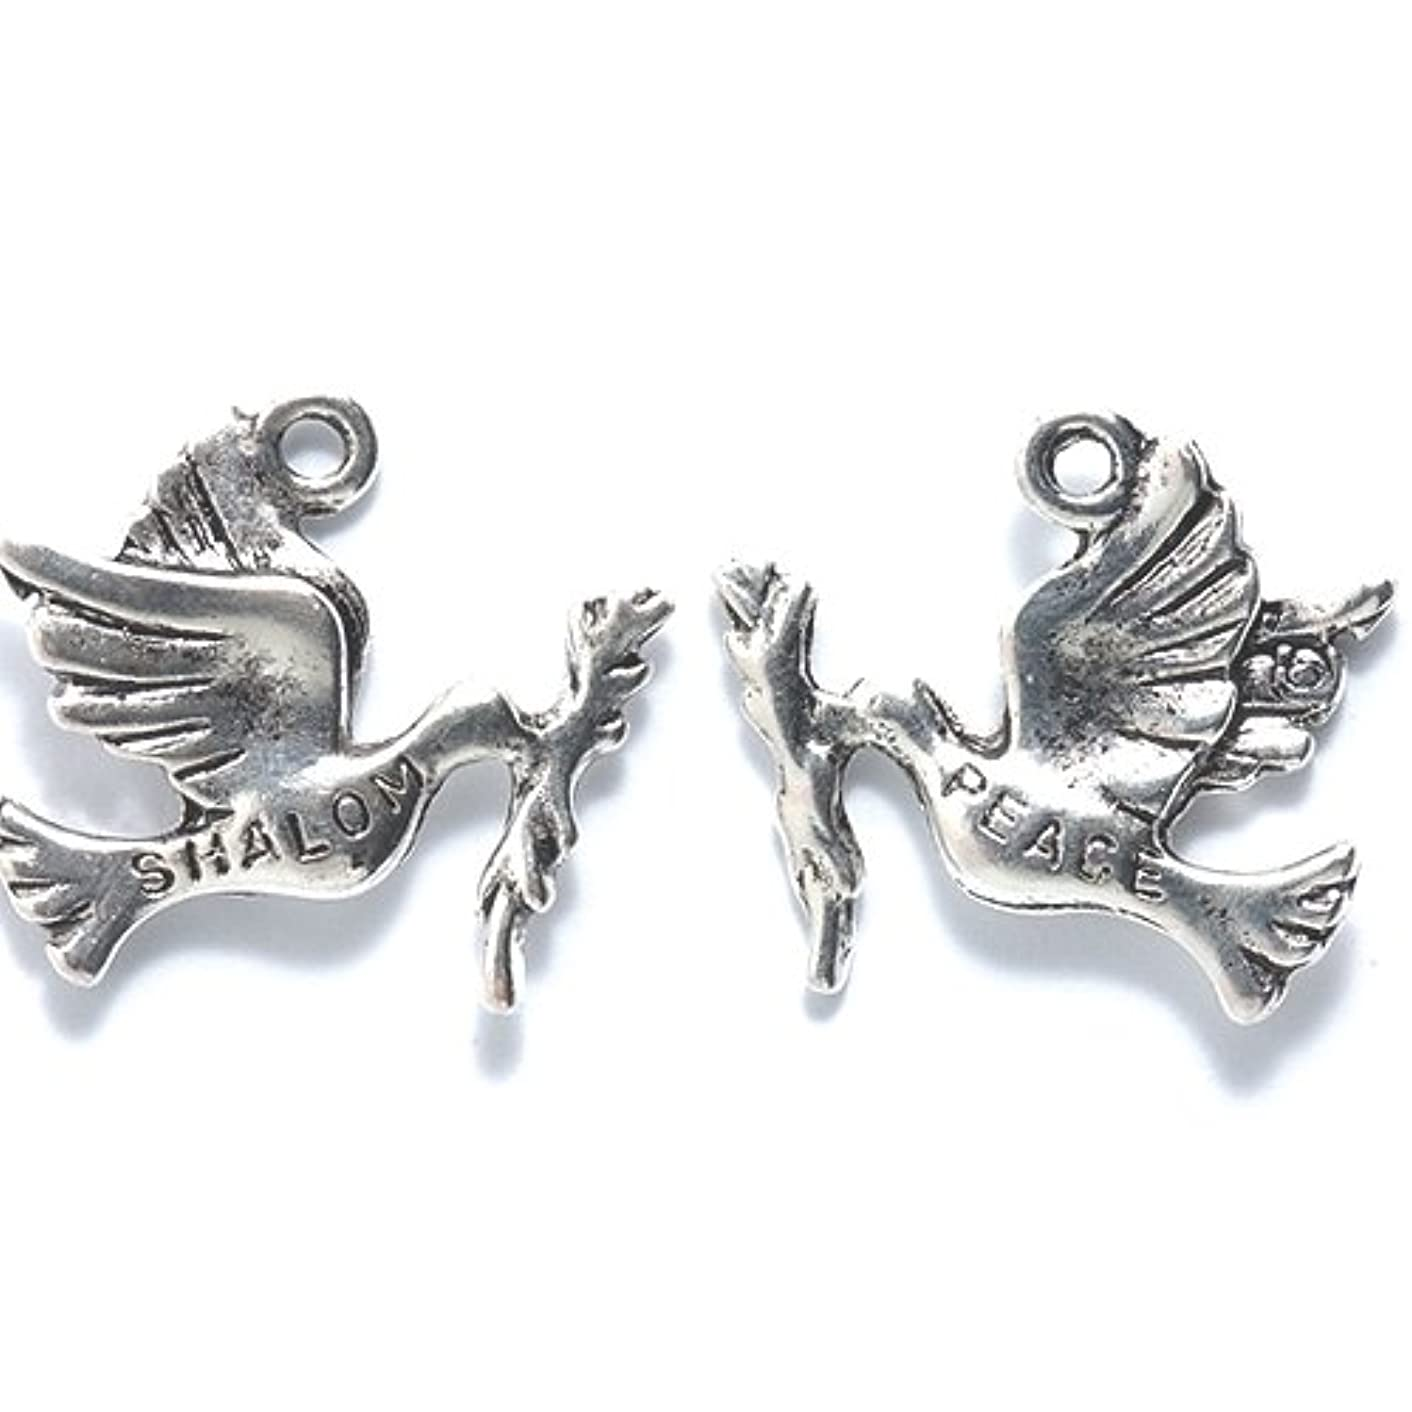 Shipwreck Beads Zinc Alloy Dove Charm with Branch Peace/Shalom, 20mm, Silver, 20-Pack